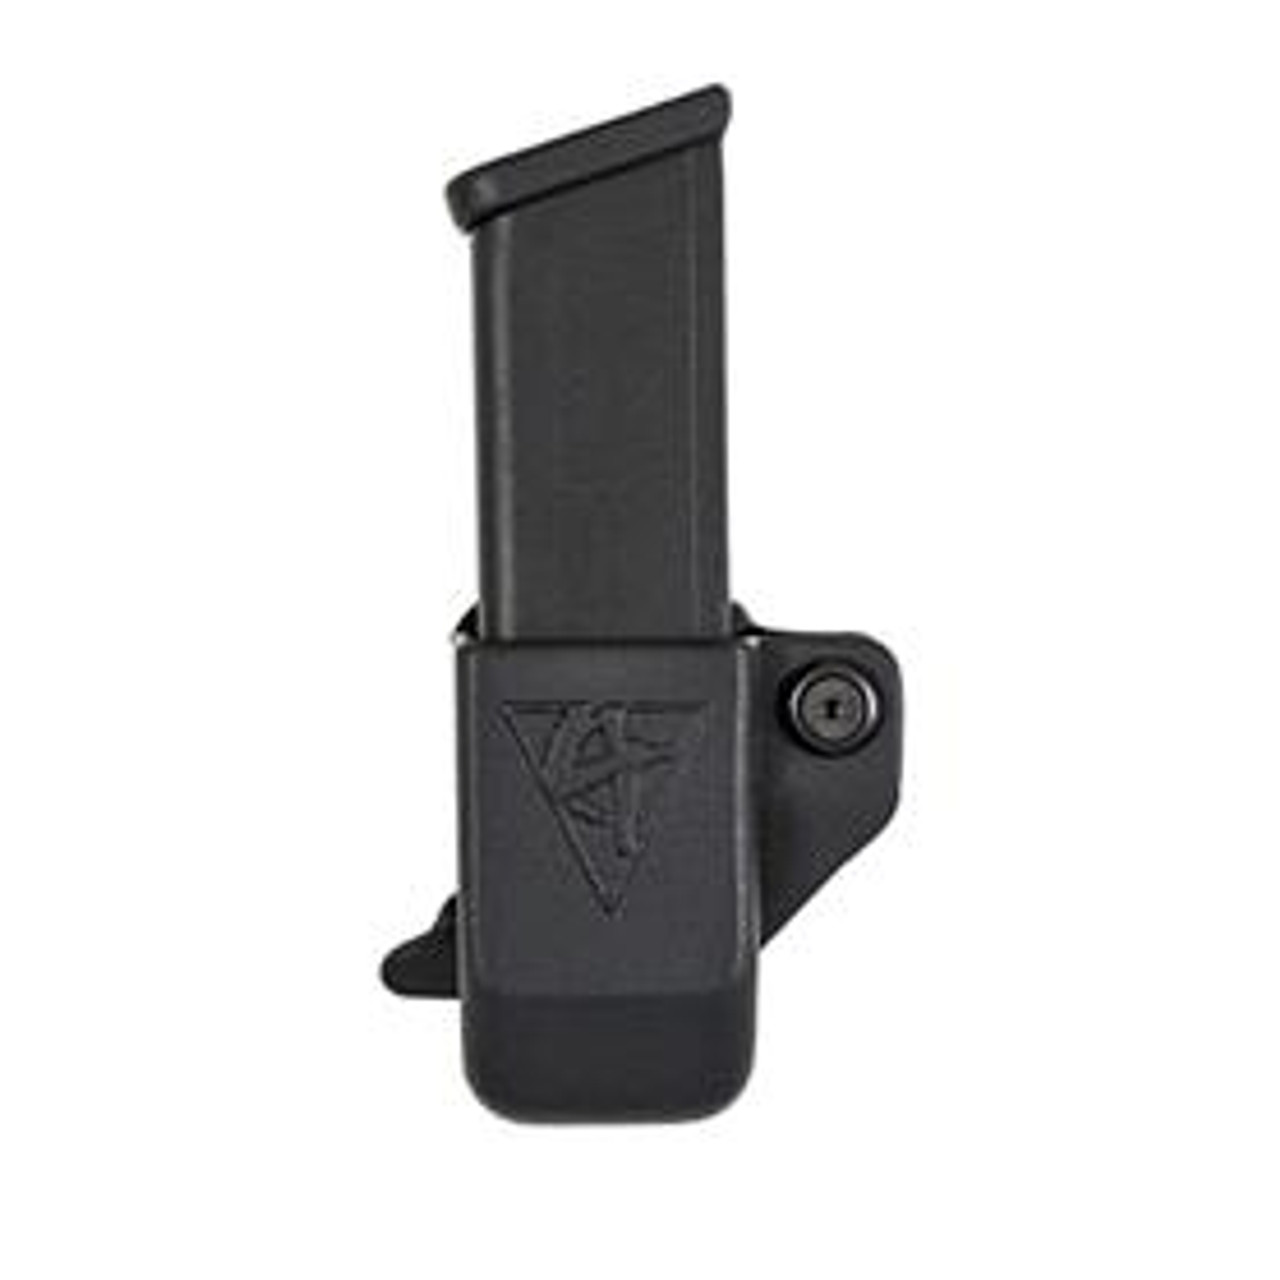 GLOCK 43 9mm DOUBLE MAG POUCH RIGHTY Magazine Holder Fits Belts up to 1.5/""